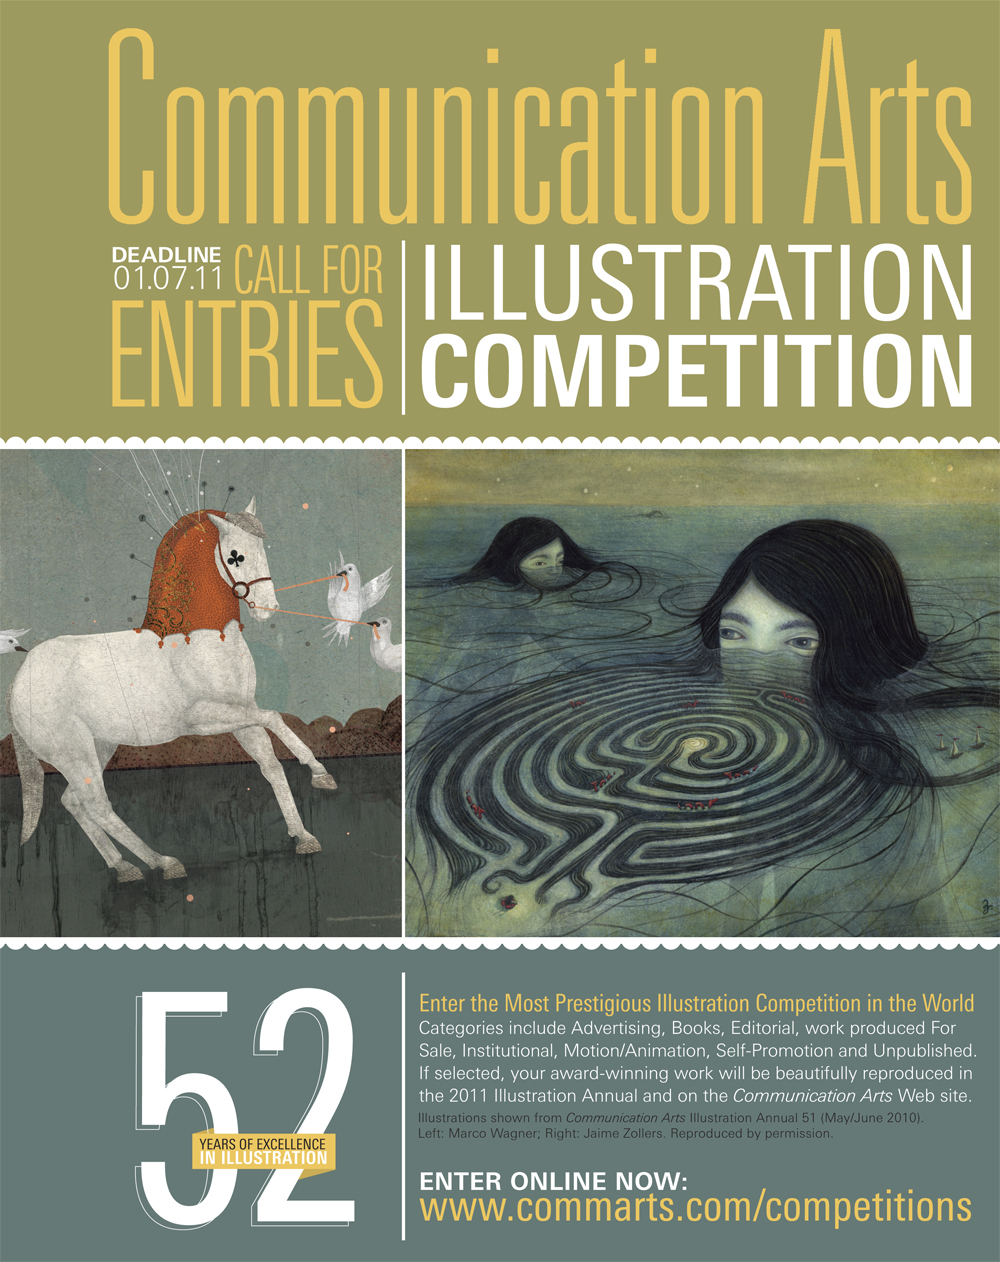 Communication Arts magazine: Illustration Competition 2011